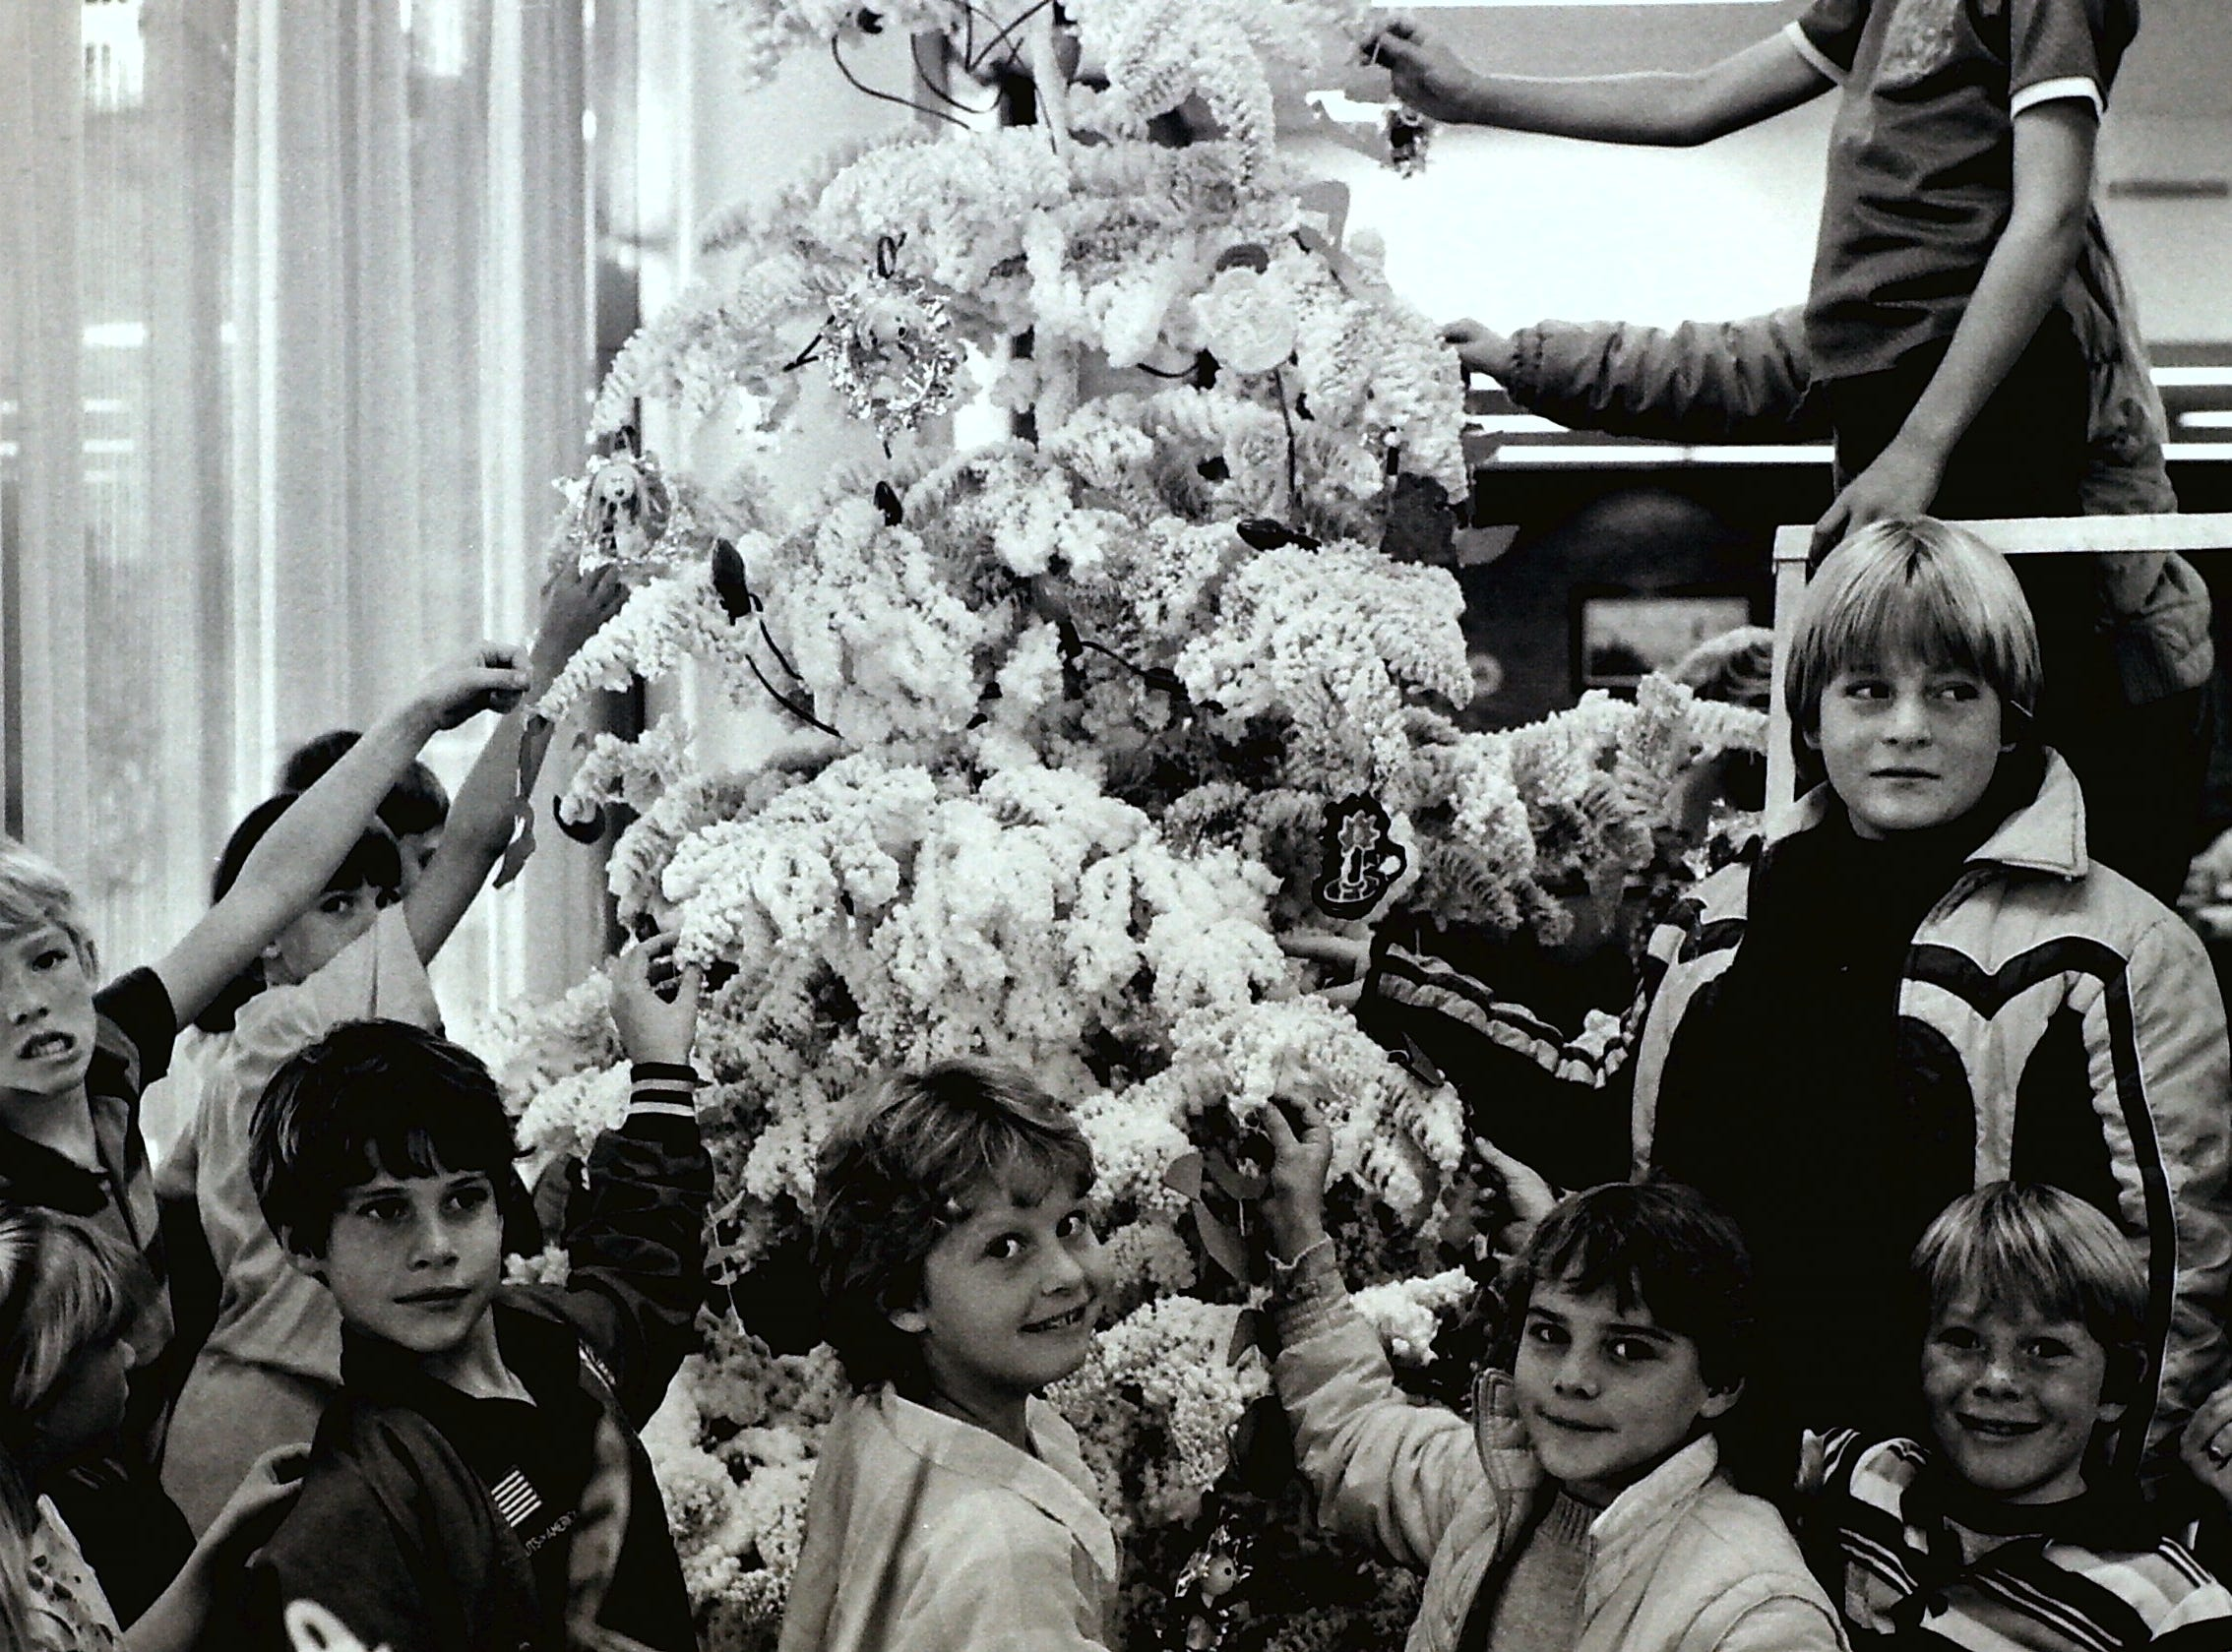 West Elementary students decorate the Zion Bank Christmas Tree circa 1985.